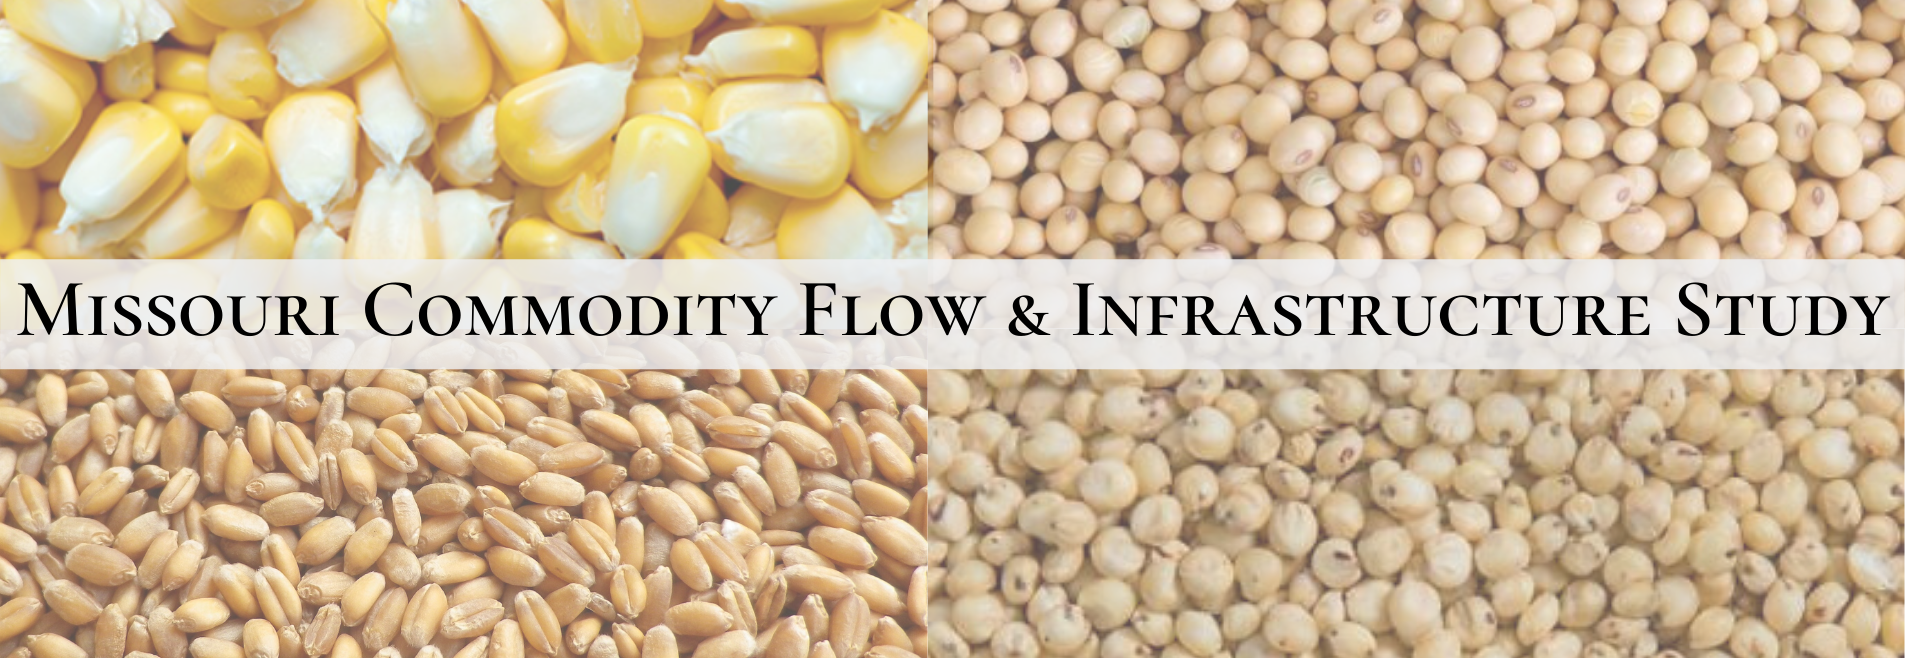 Missouri Commodity Flow and Infrastructure Study